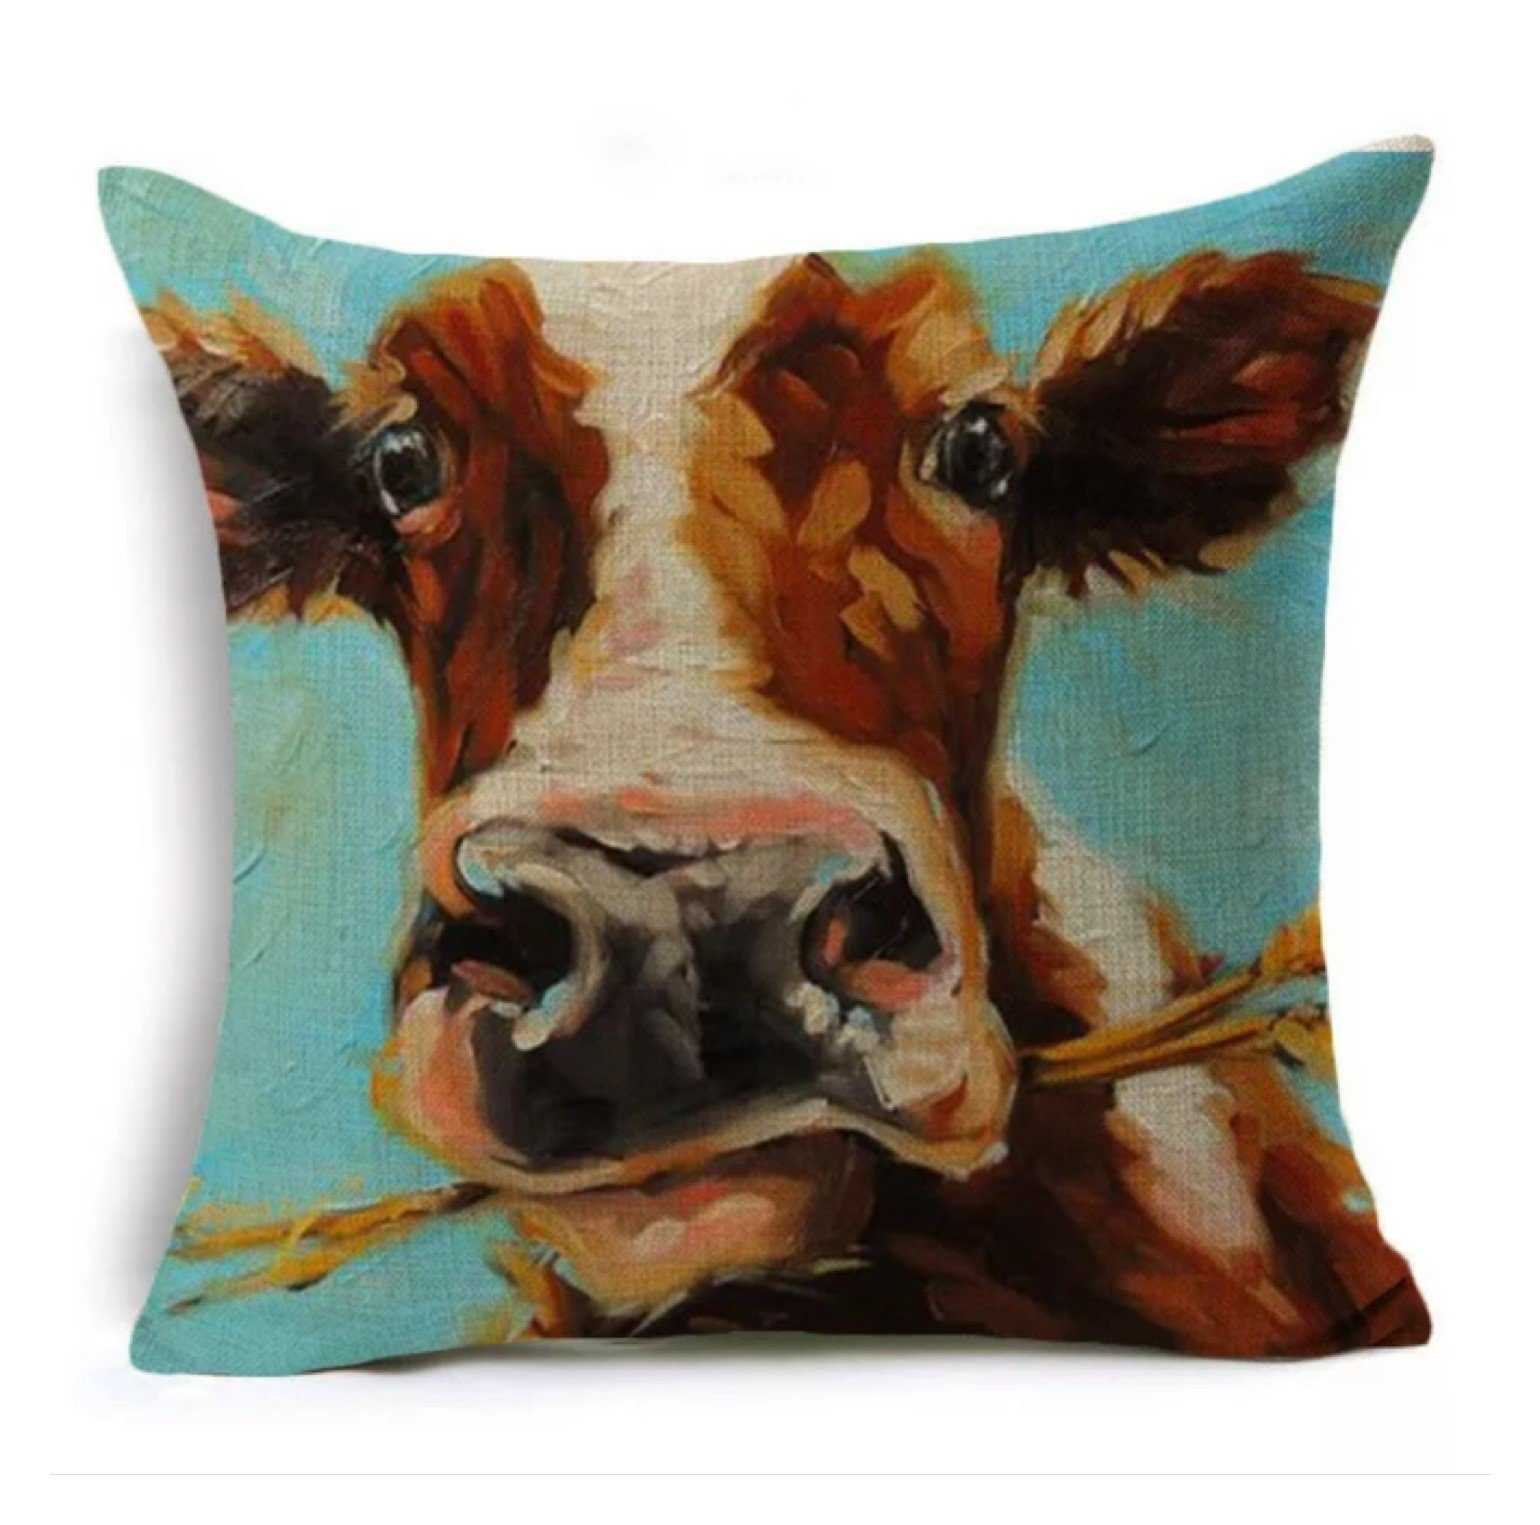 Cushion Pillow Cow Rustic Brown | The Renmy Store